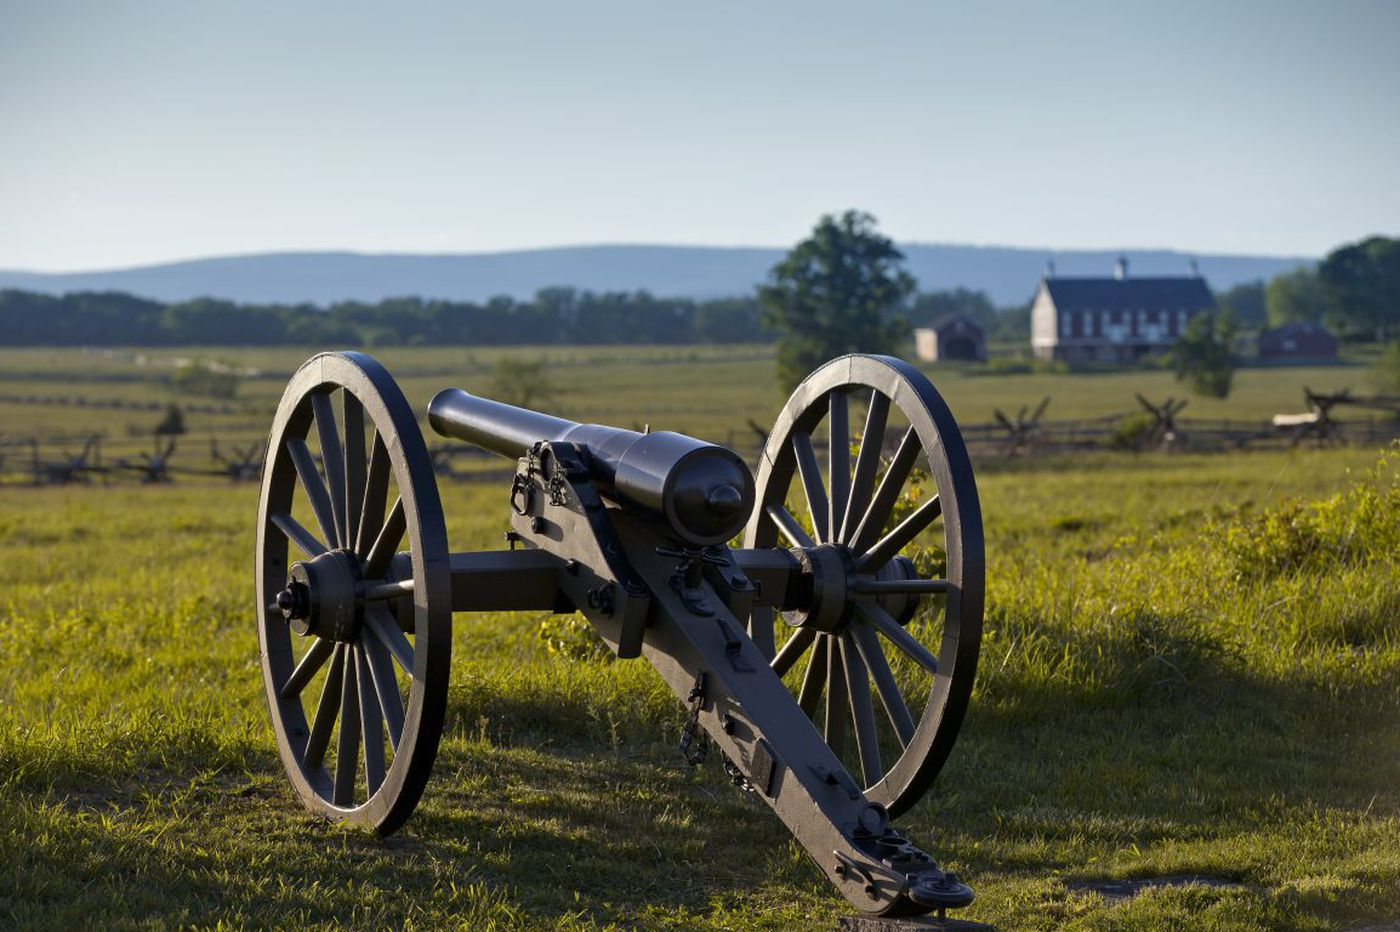 Protests at Gettysburg this weekend - or maybe not